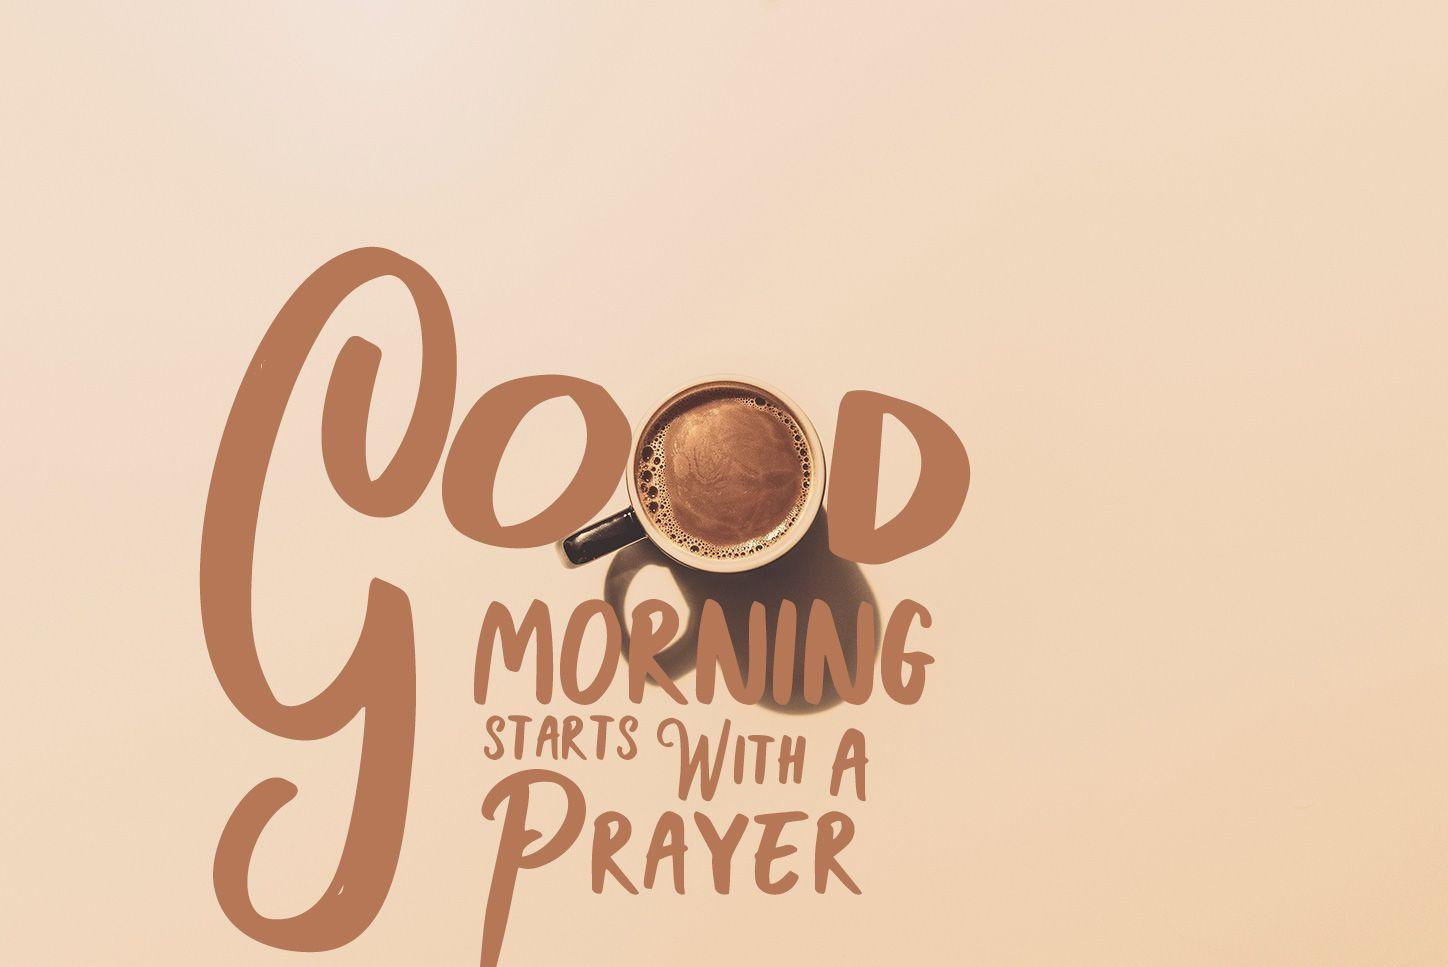 Morning Prayer Wallpapers